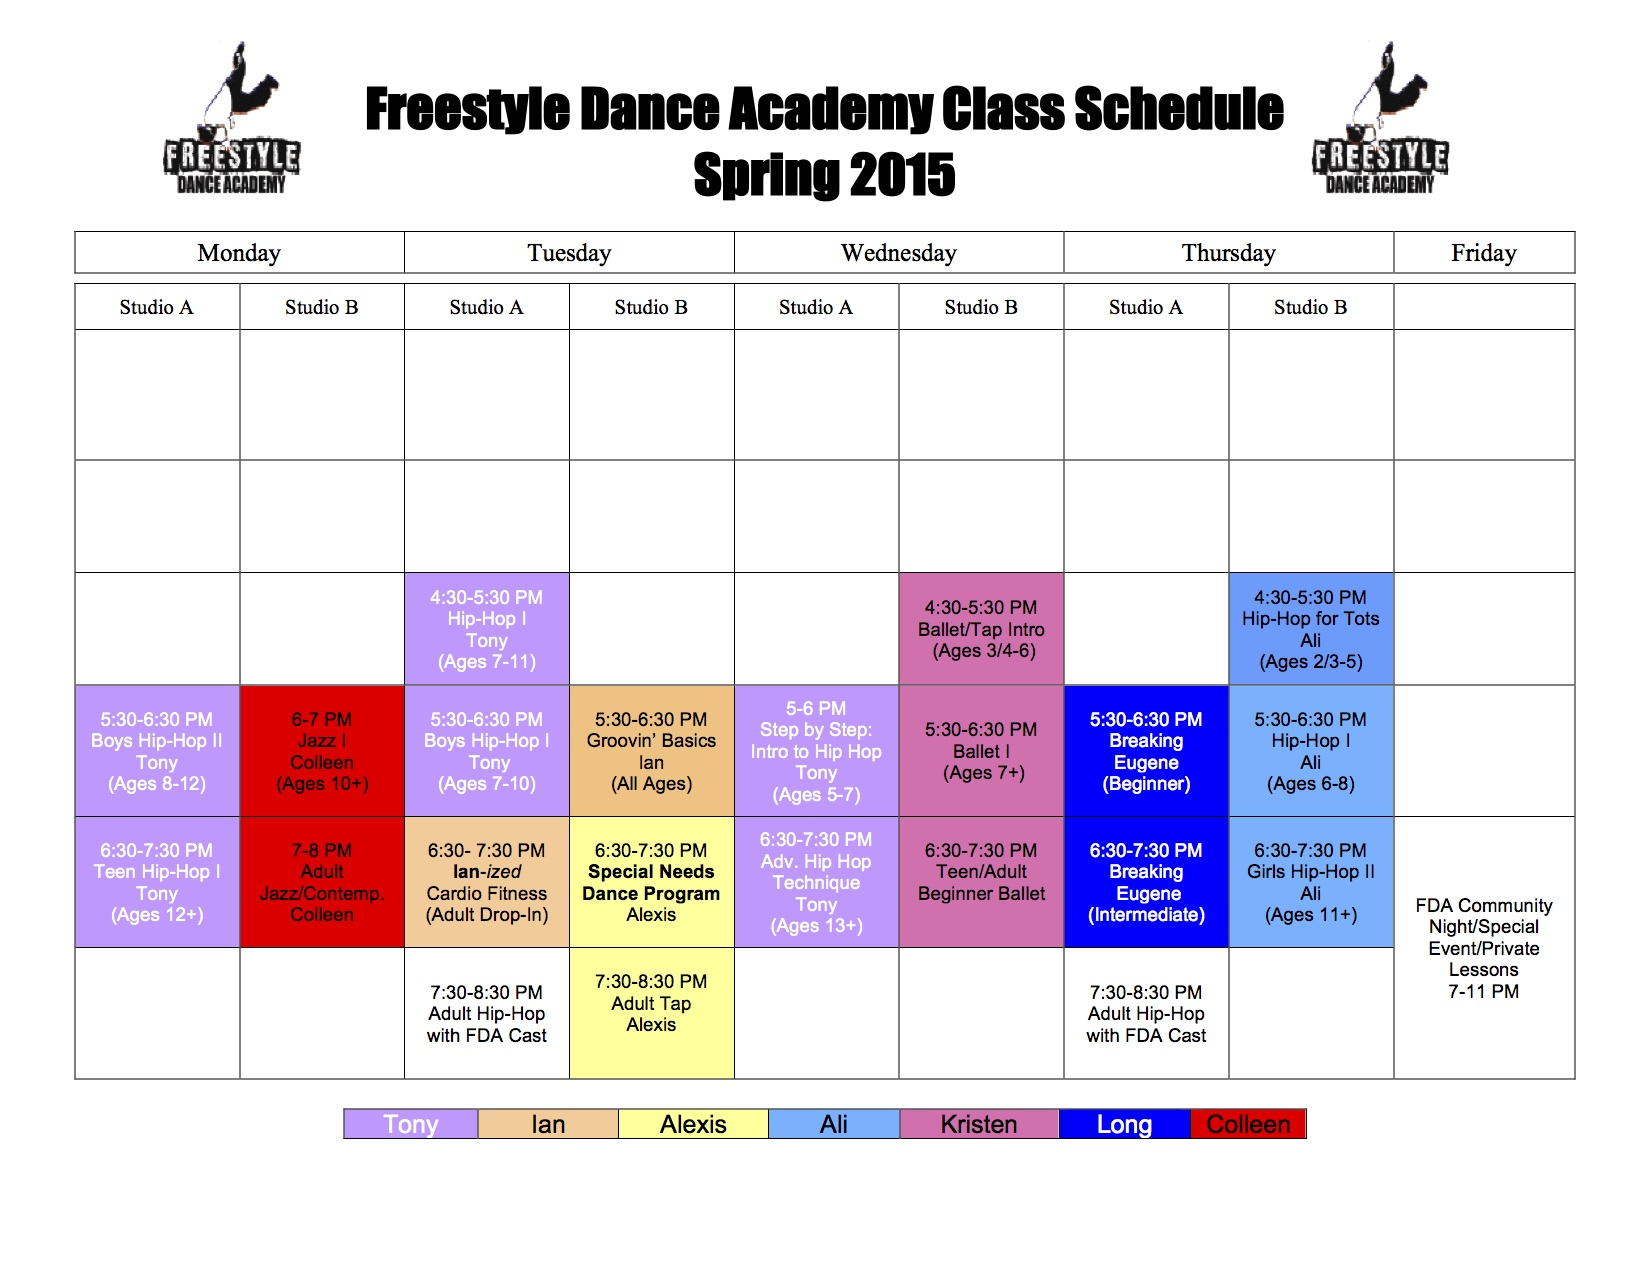 Dance Class Schedule for Spring 2015 at Freestyle Dance Academy